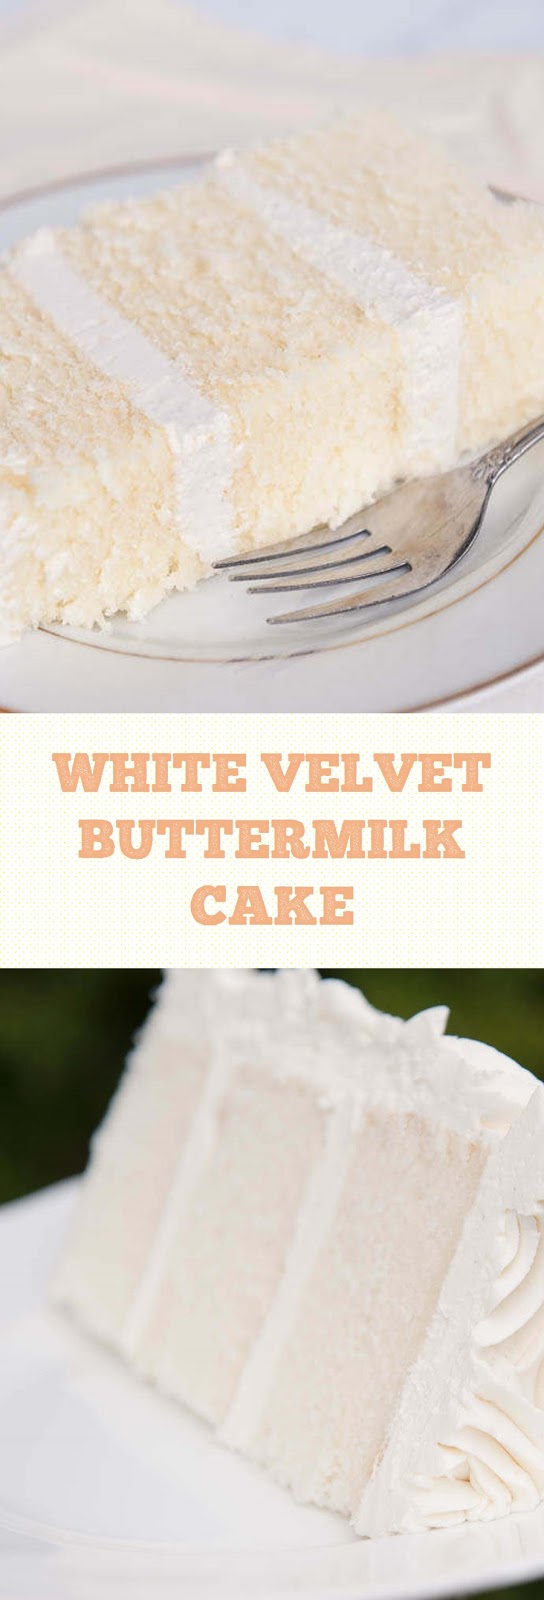 White Velvet Buttermilk Cake